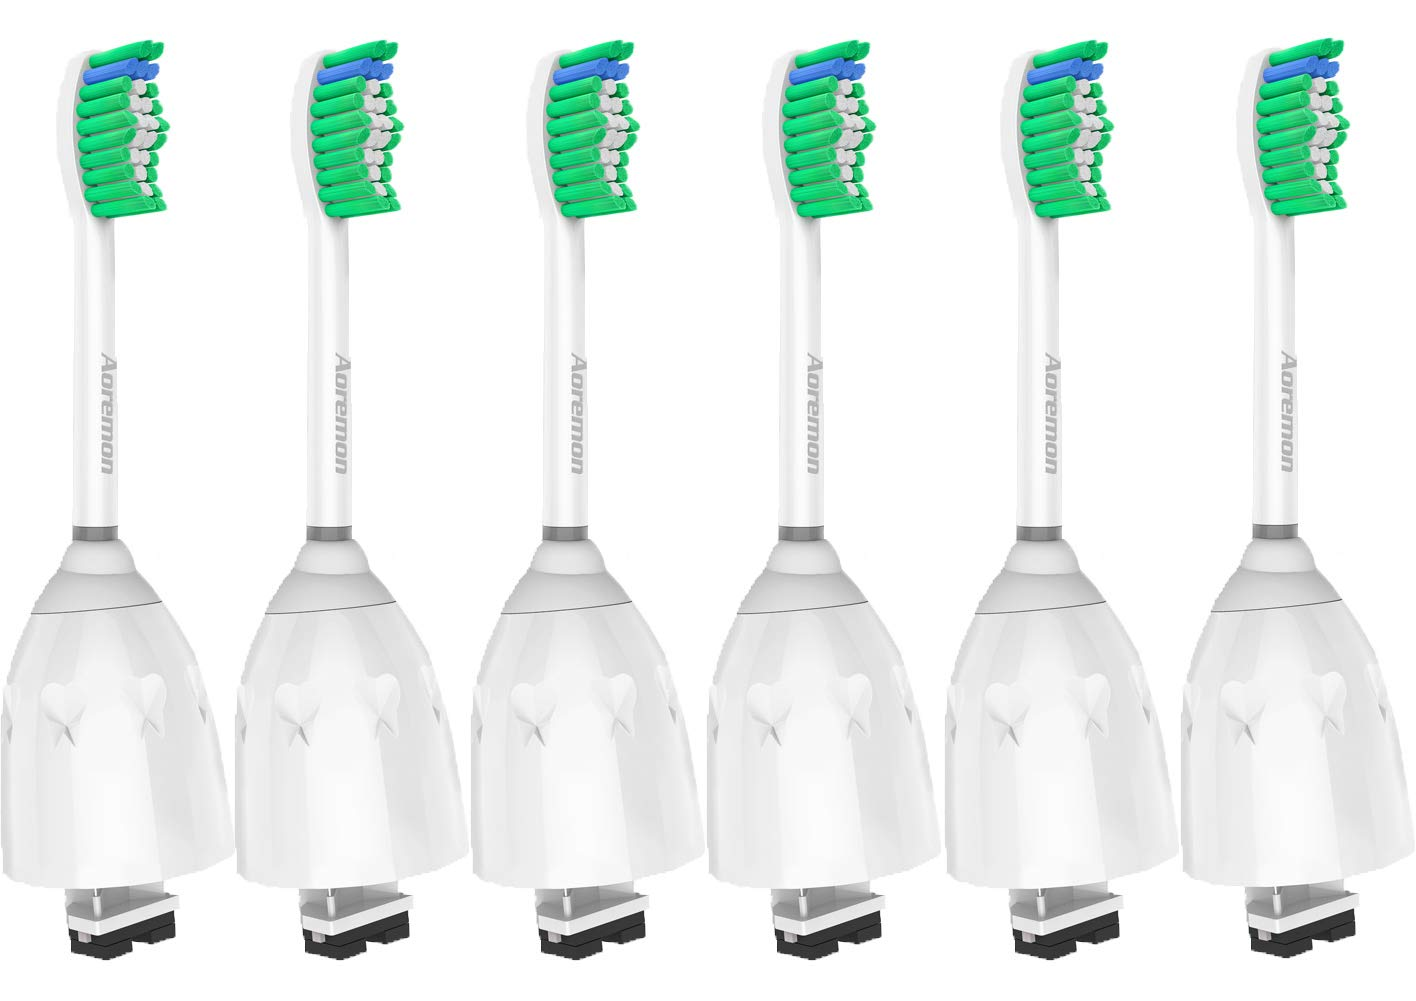 Replacement toothbrush Heads for Philips Sonicare E-Series HX7022/66, 6pack, Fit Sonicare Essence, Xtreme, Elite, Advance, and CleanCare Electric Toothbrush with Hygienic caps by Aoremon by Aoremon